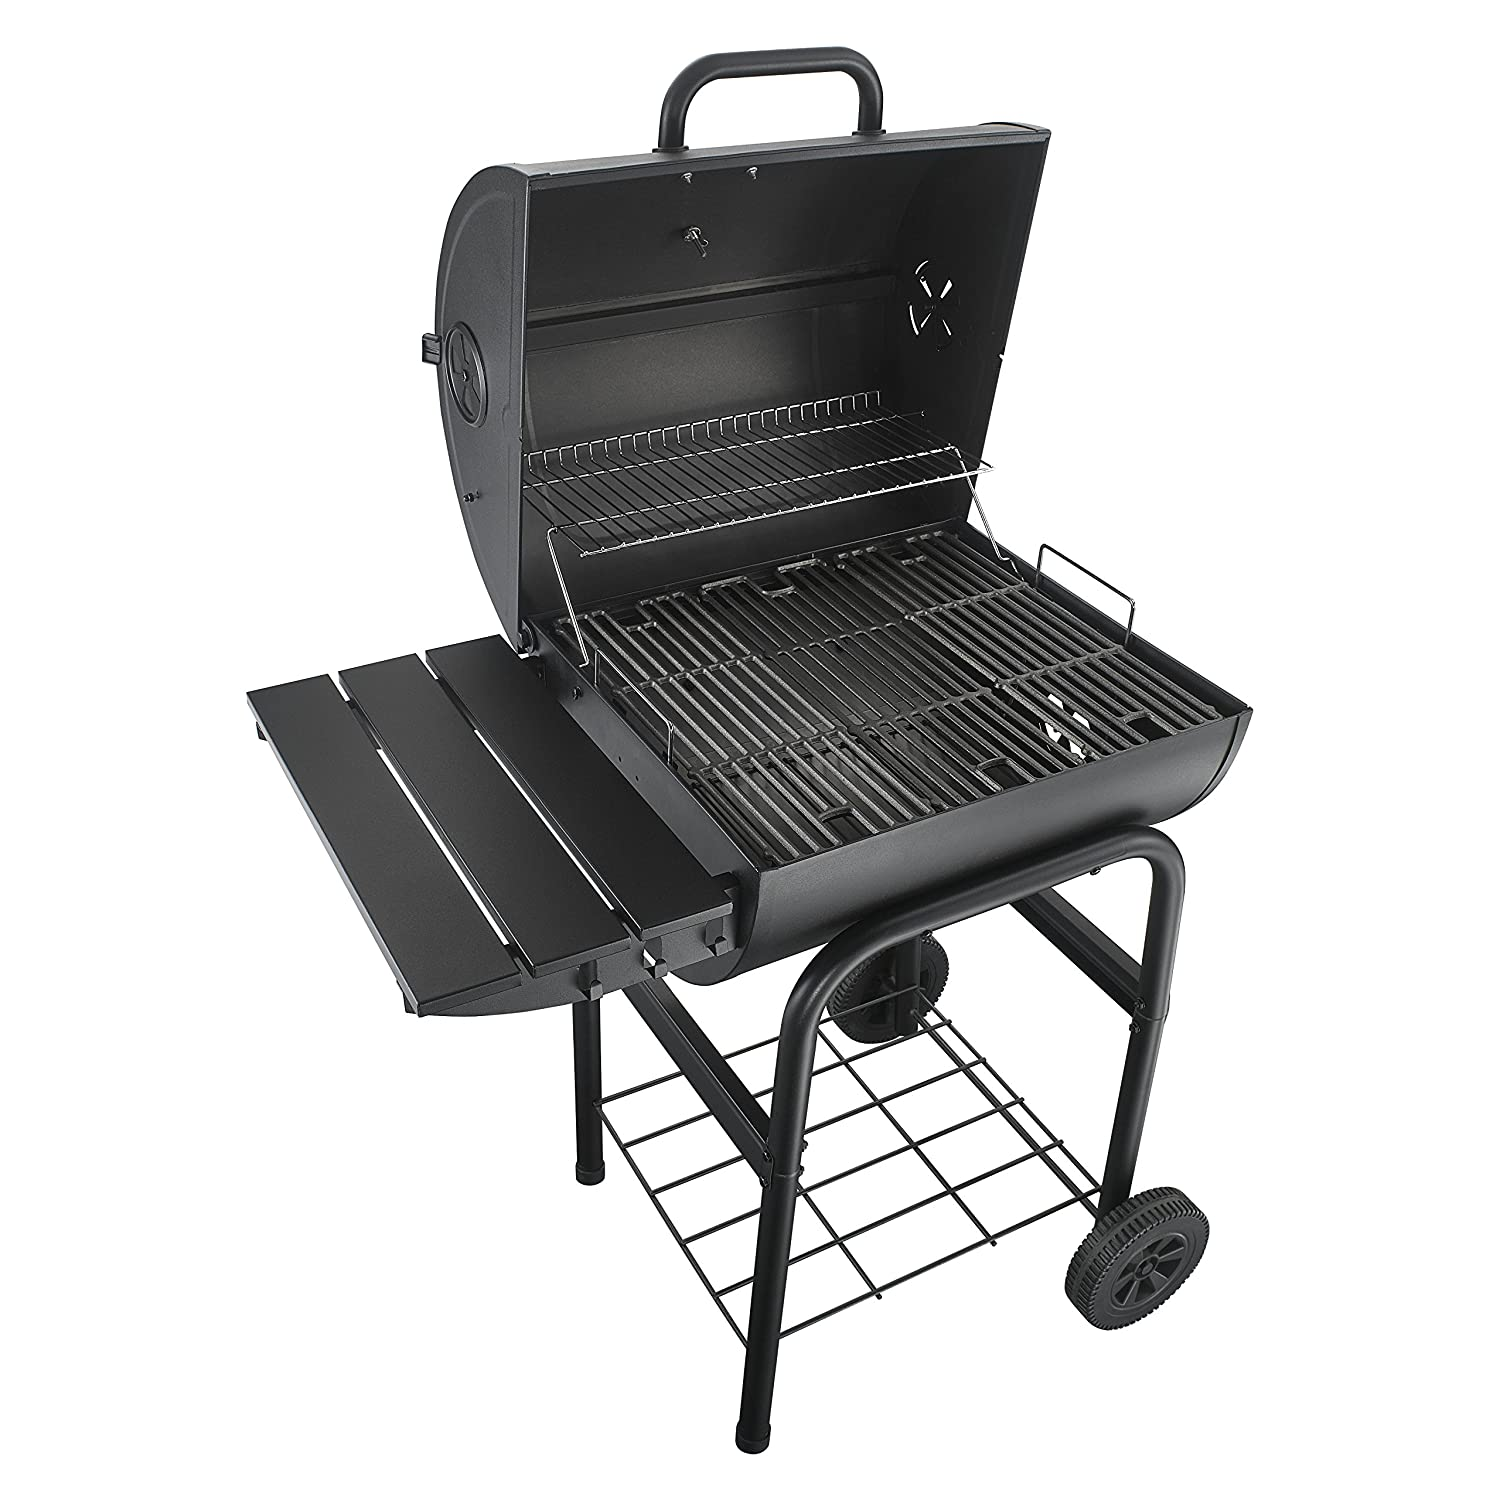 Char-Broil American Gourmet 24-inch Charcoal Grill